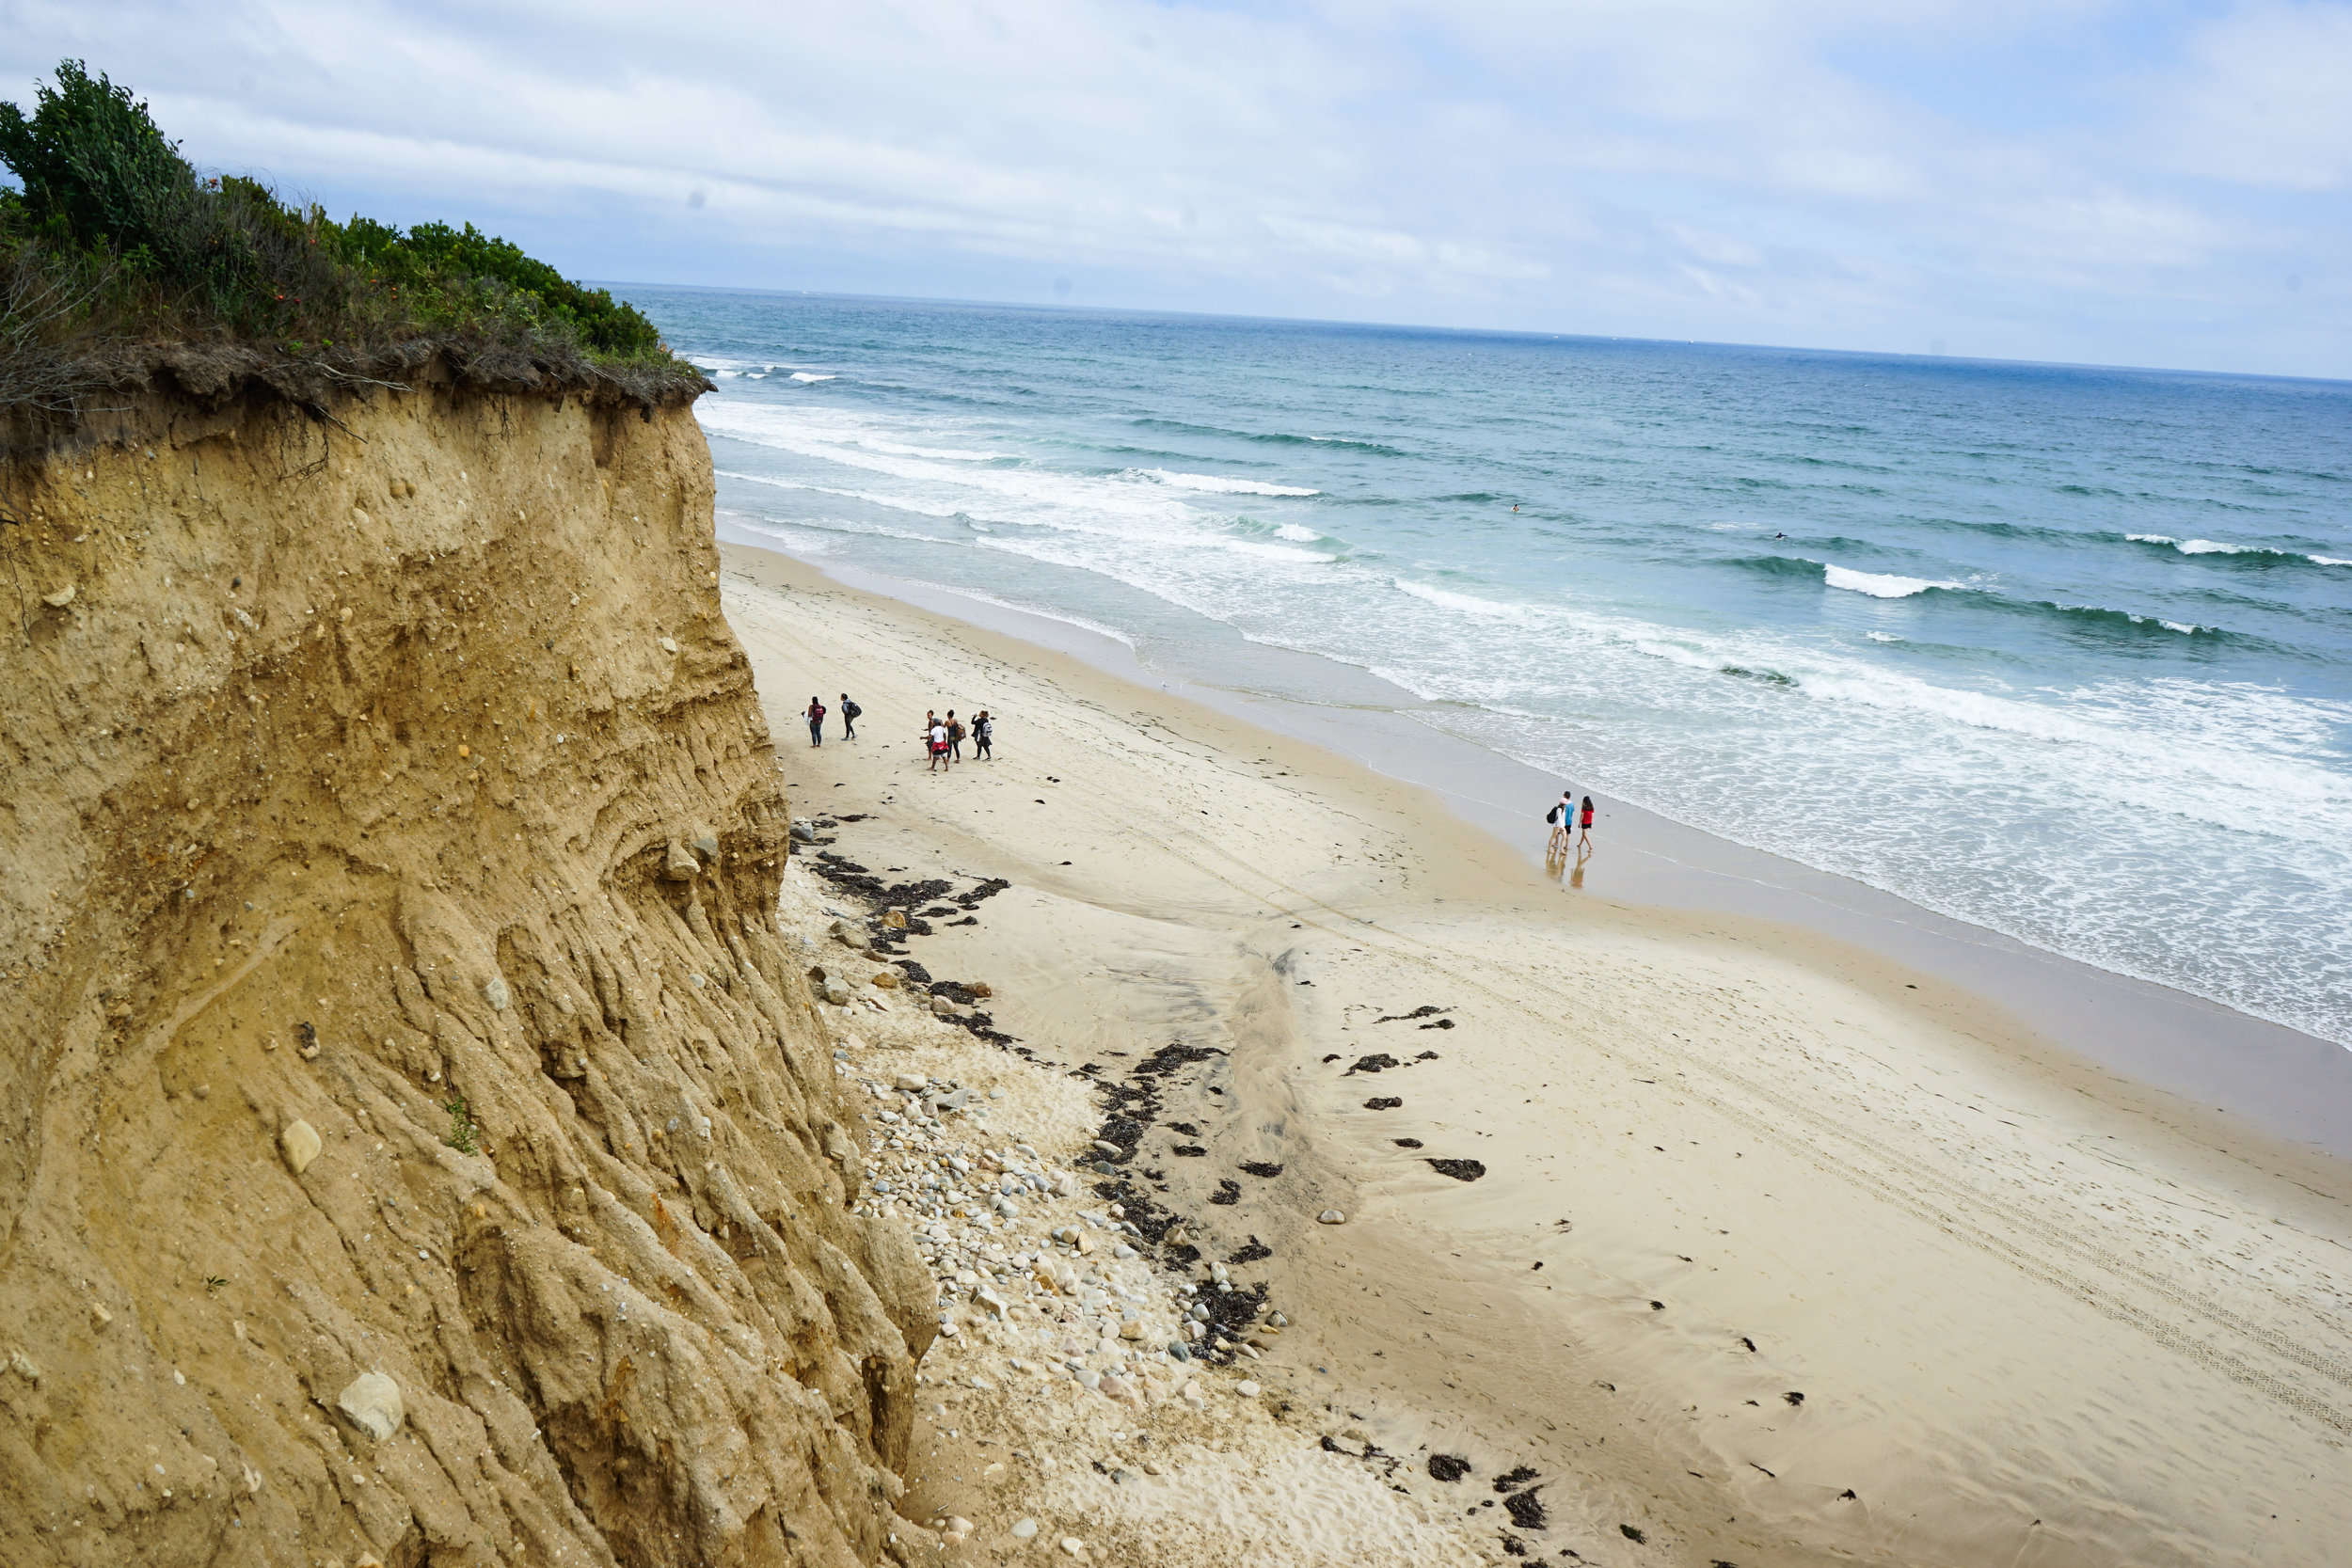 Overlooking the beach from a rocky dune.